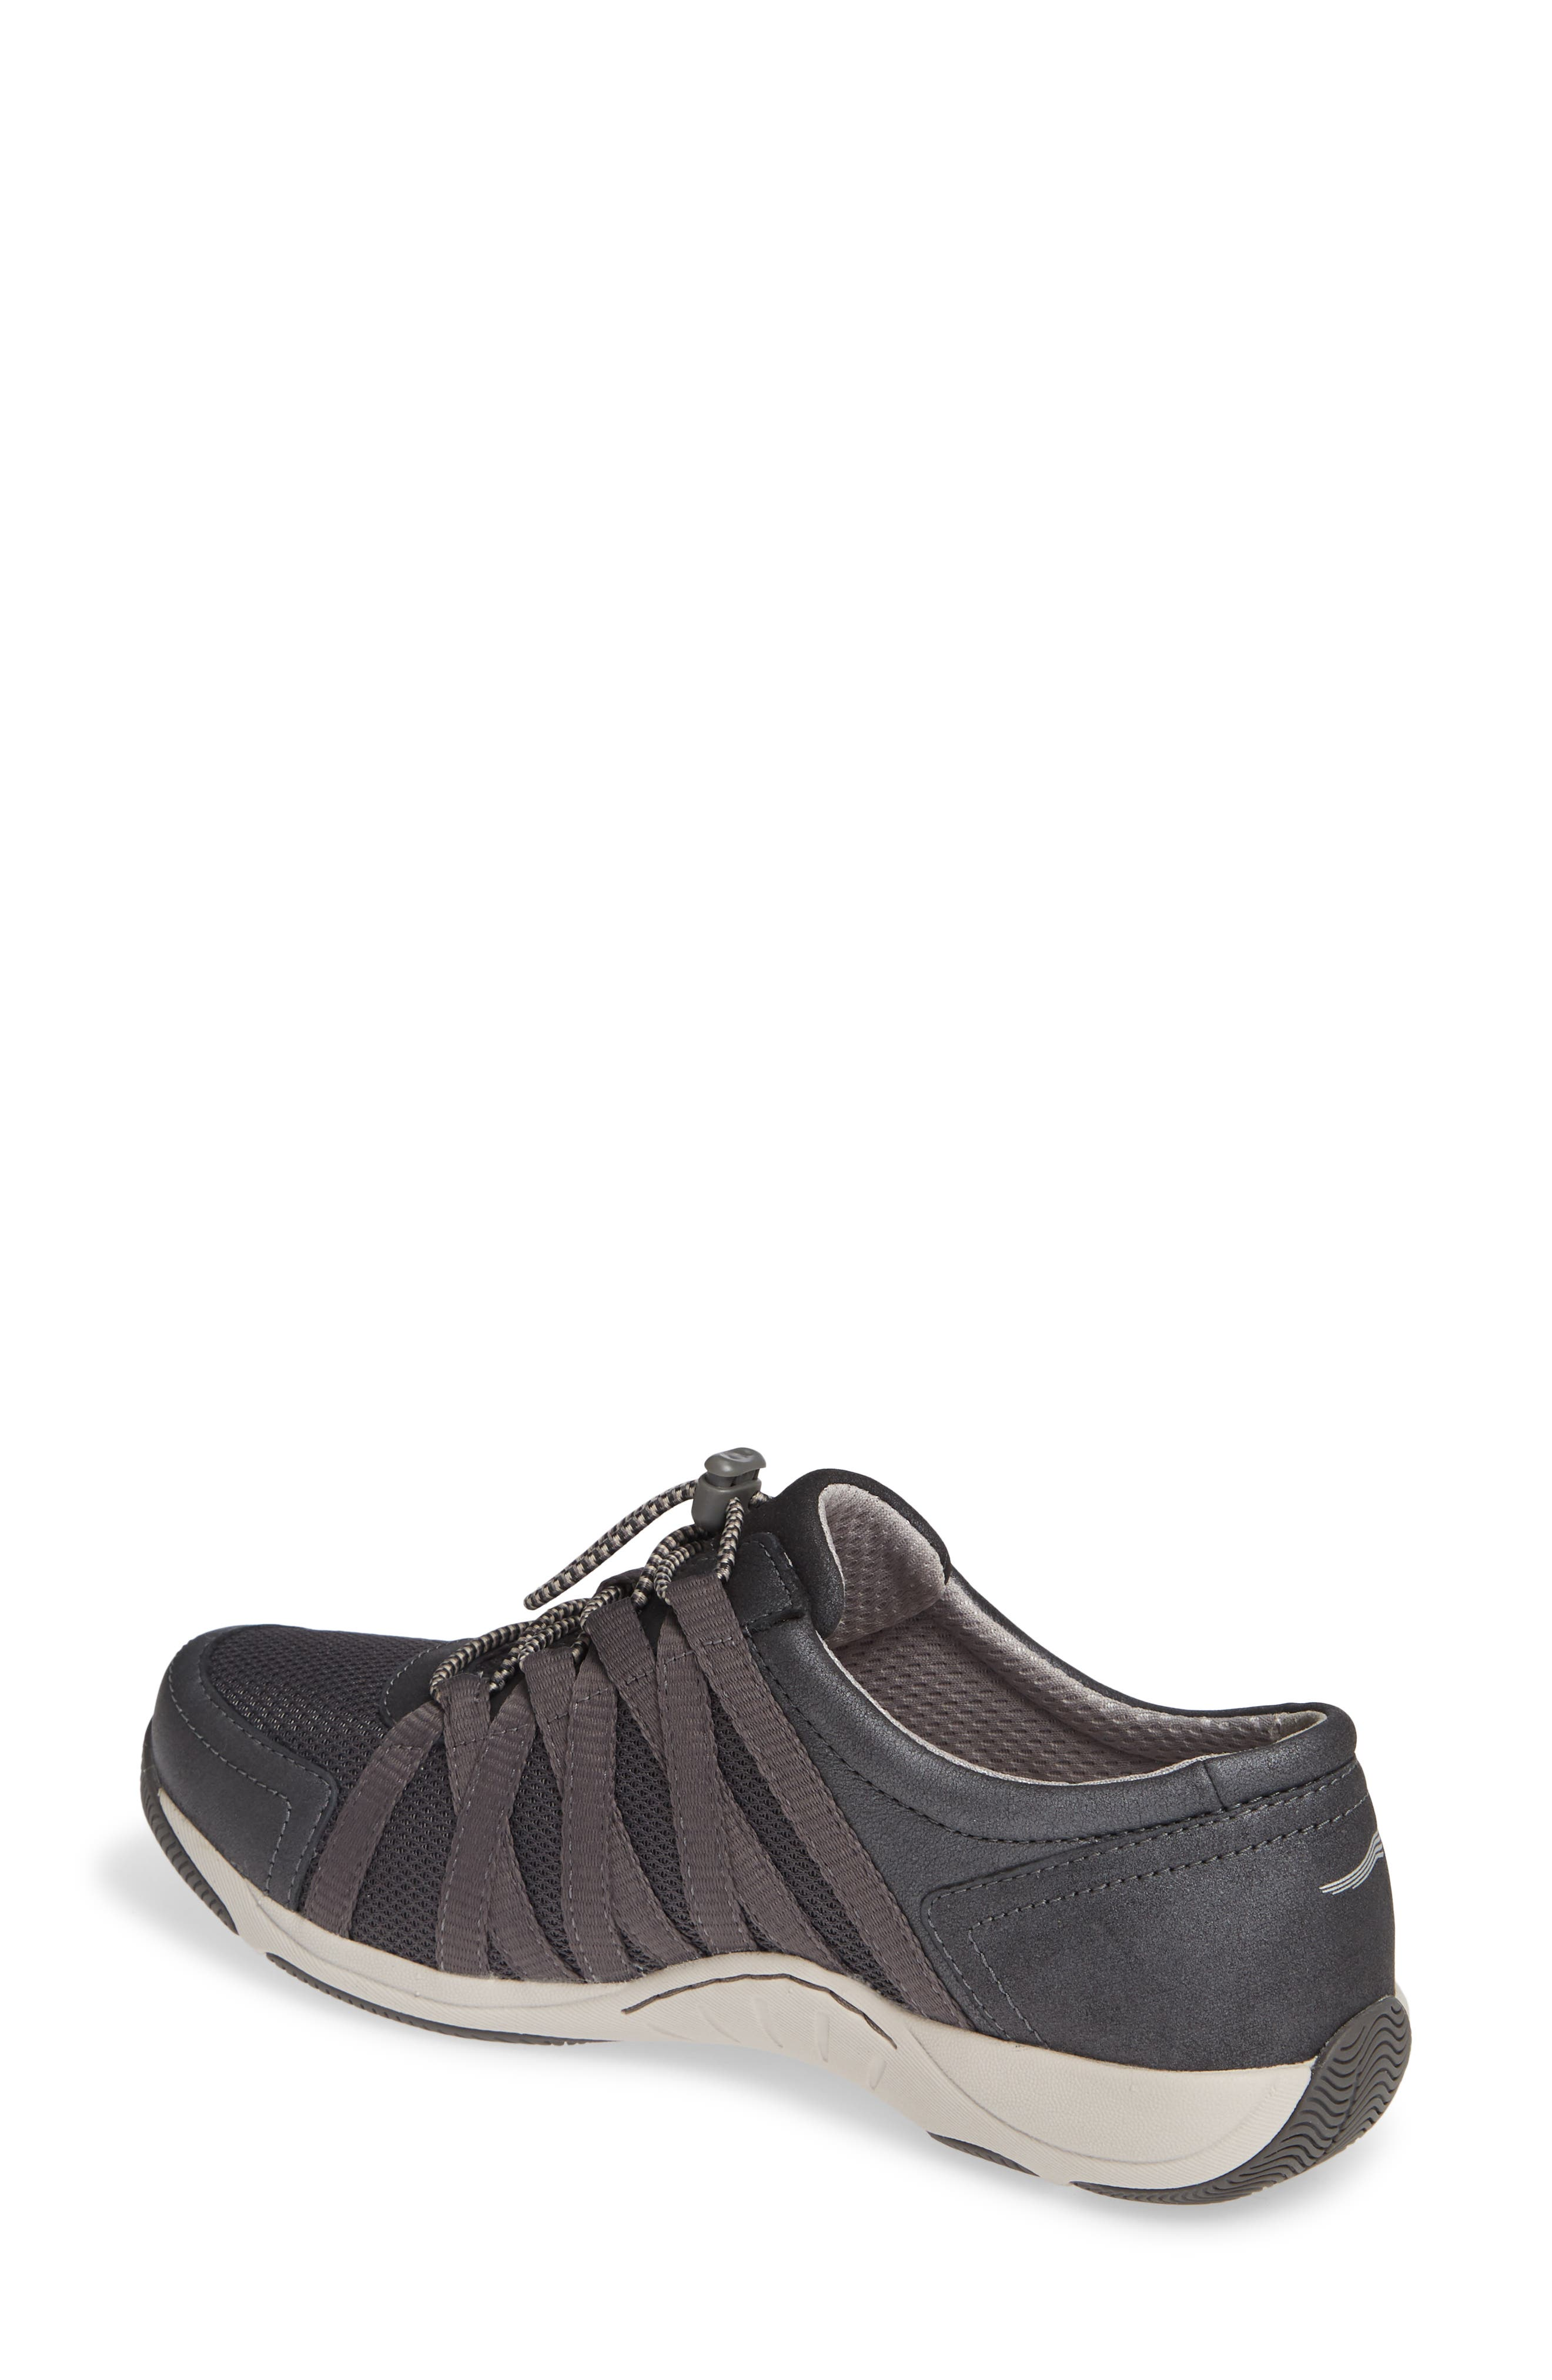 Halifax Collection Honor Sneaker,                             Alternate thumbnail 2, color,                             CHARCOAL/ CHARCOAL SUEDE